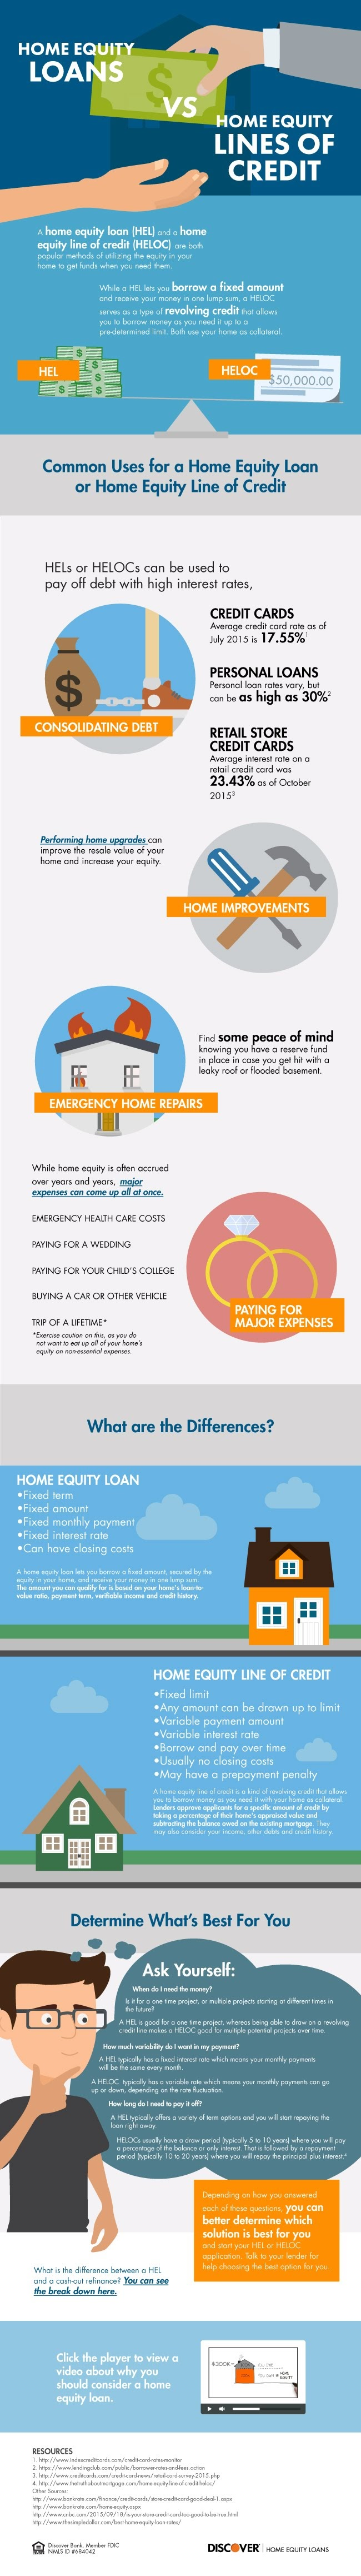 Home Equity Loan vs HELOC #infographic